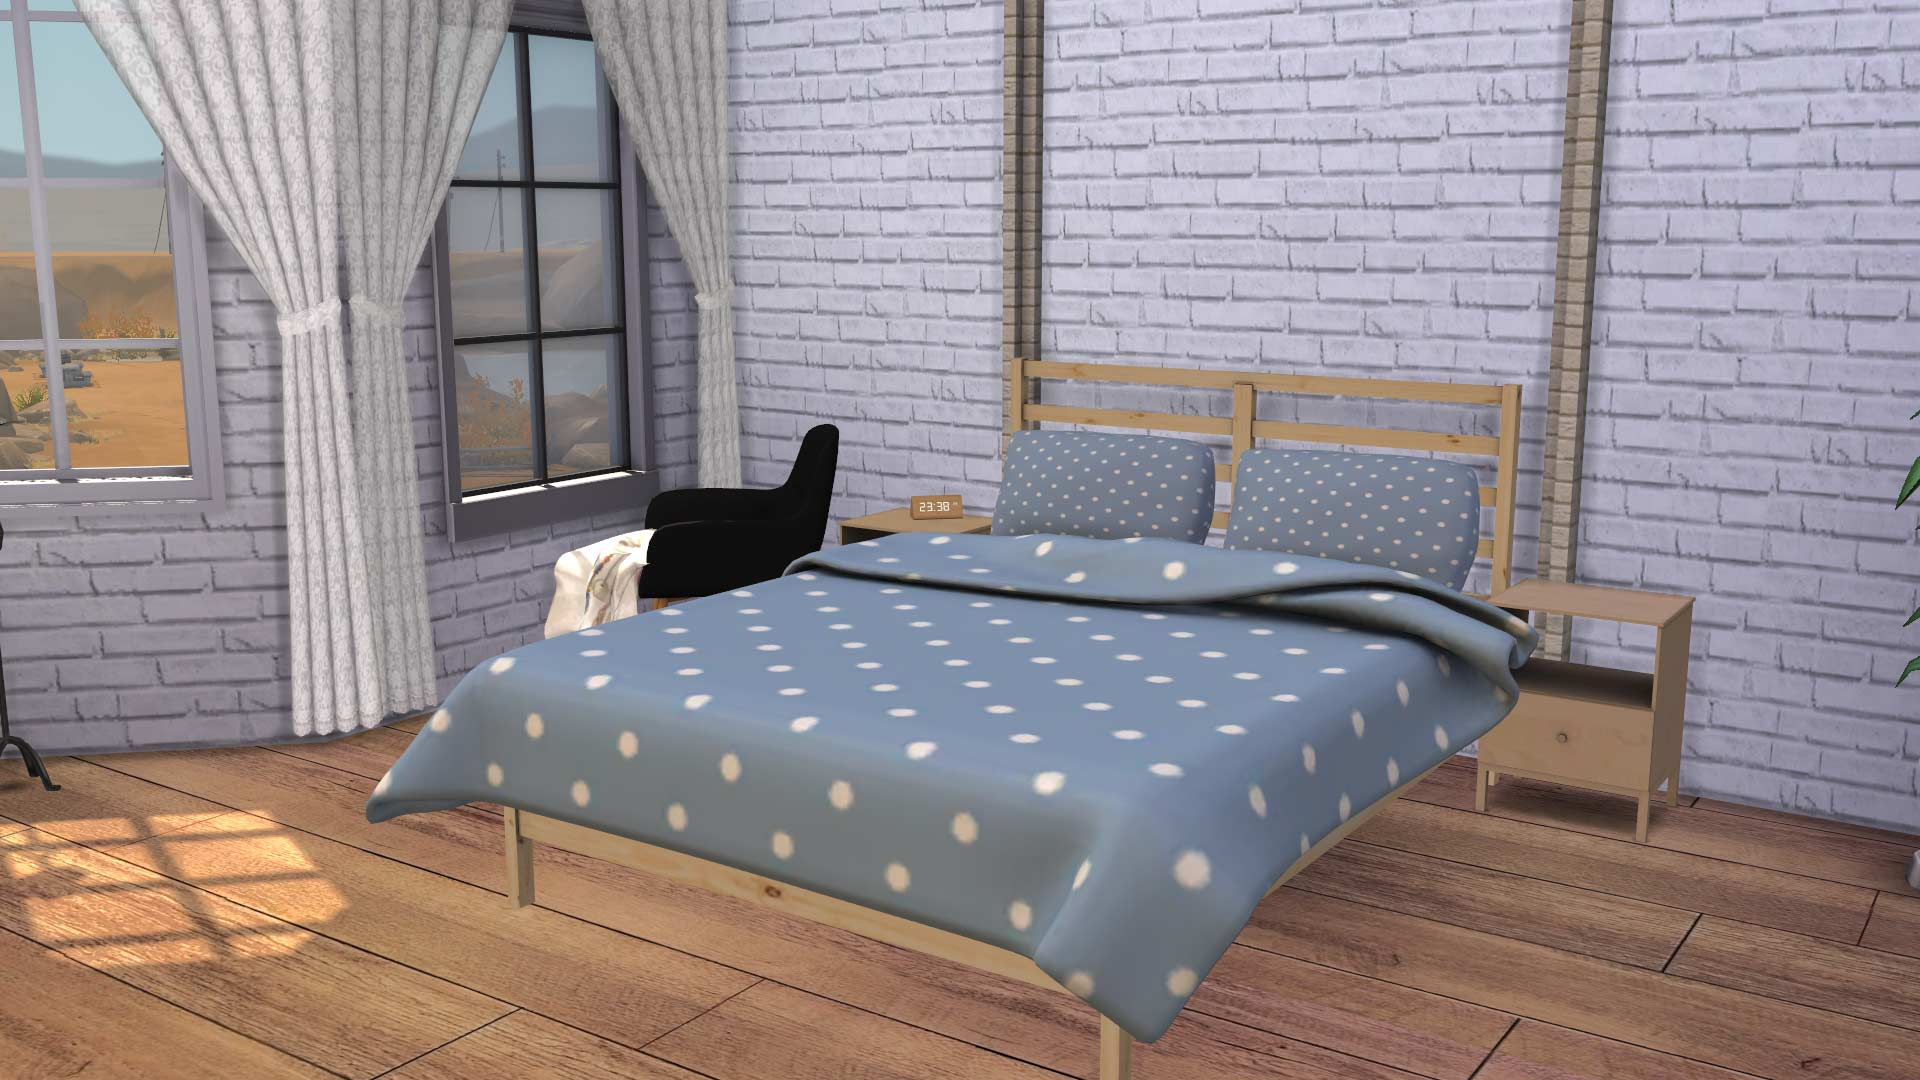 Ikea Tarva Bed with Blanket & Pillow, high quality sims 4 cc, sunkissedlilacs, free sims 4 furniture, sims 4 custom content,